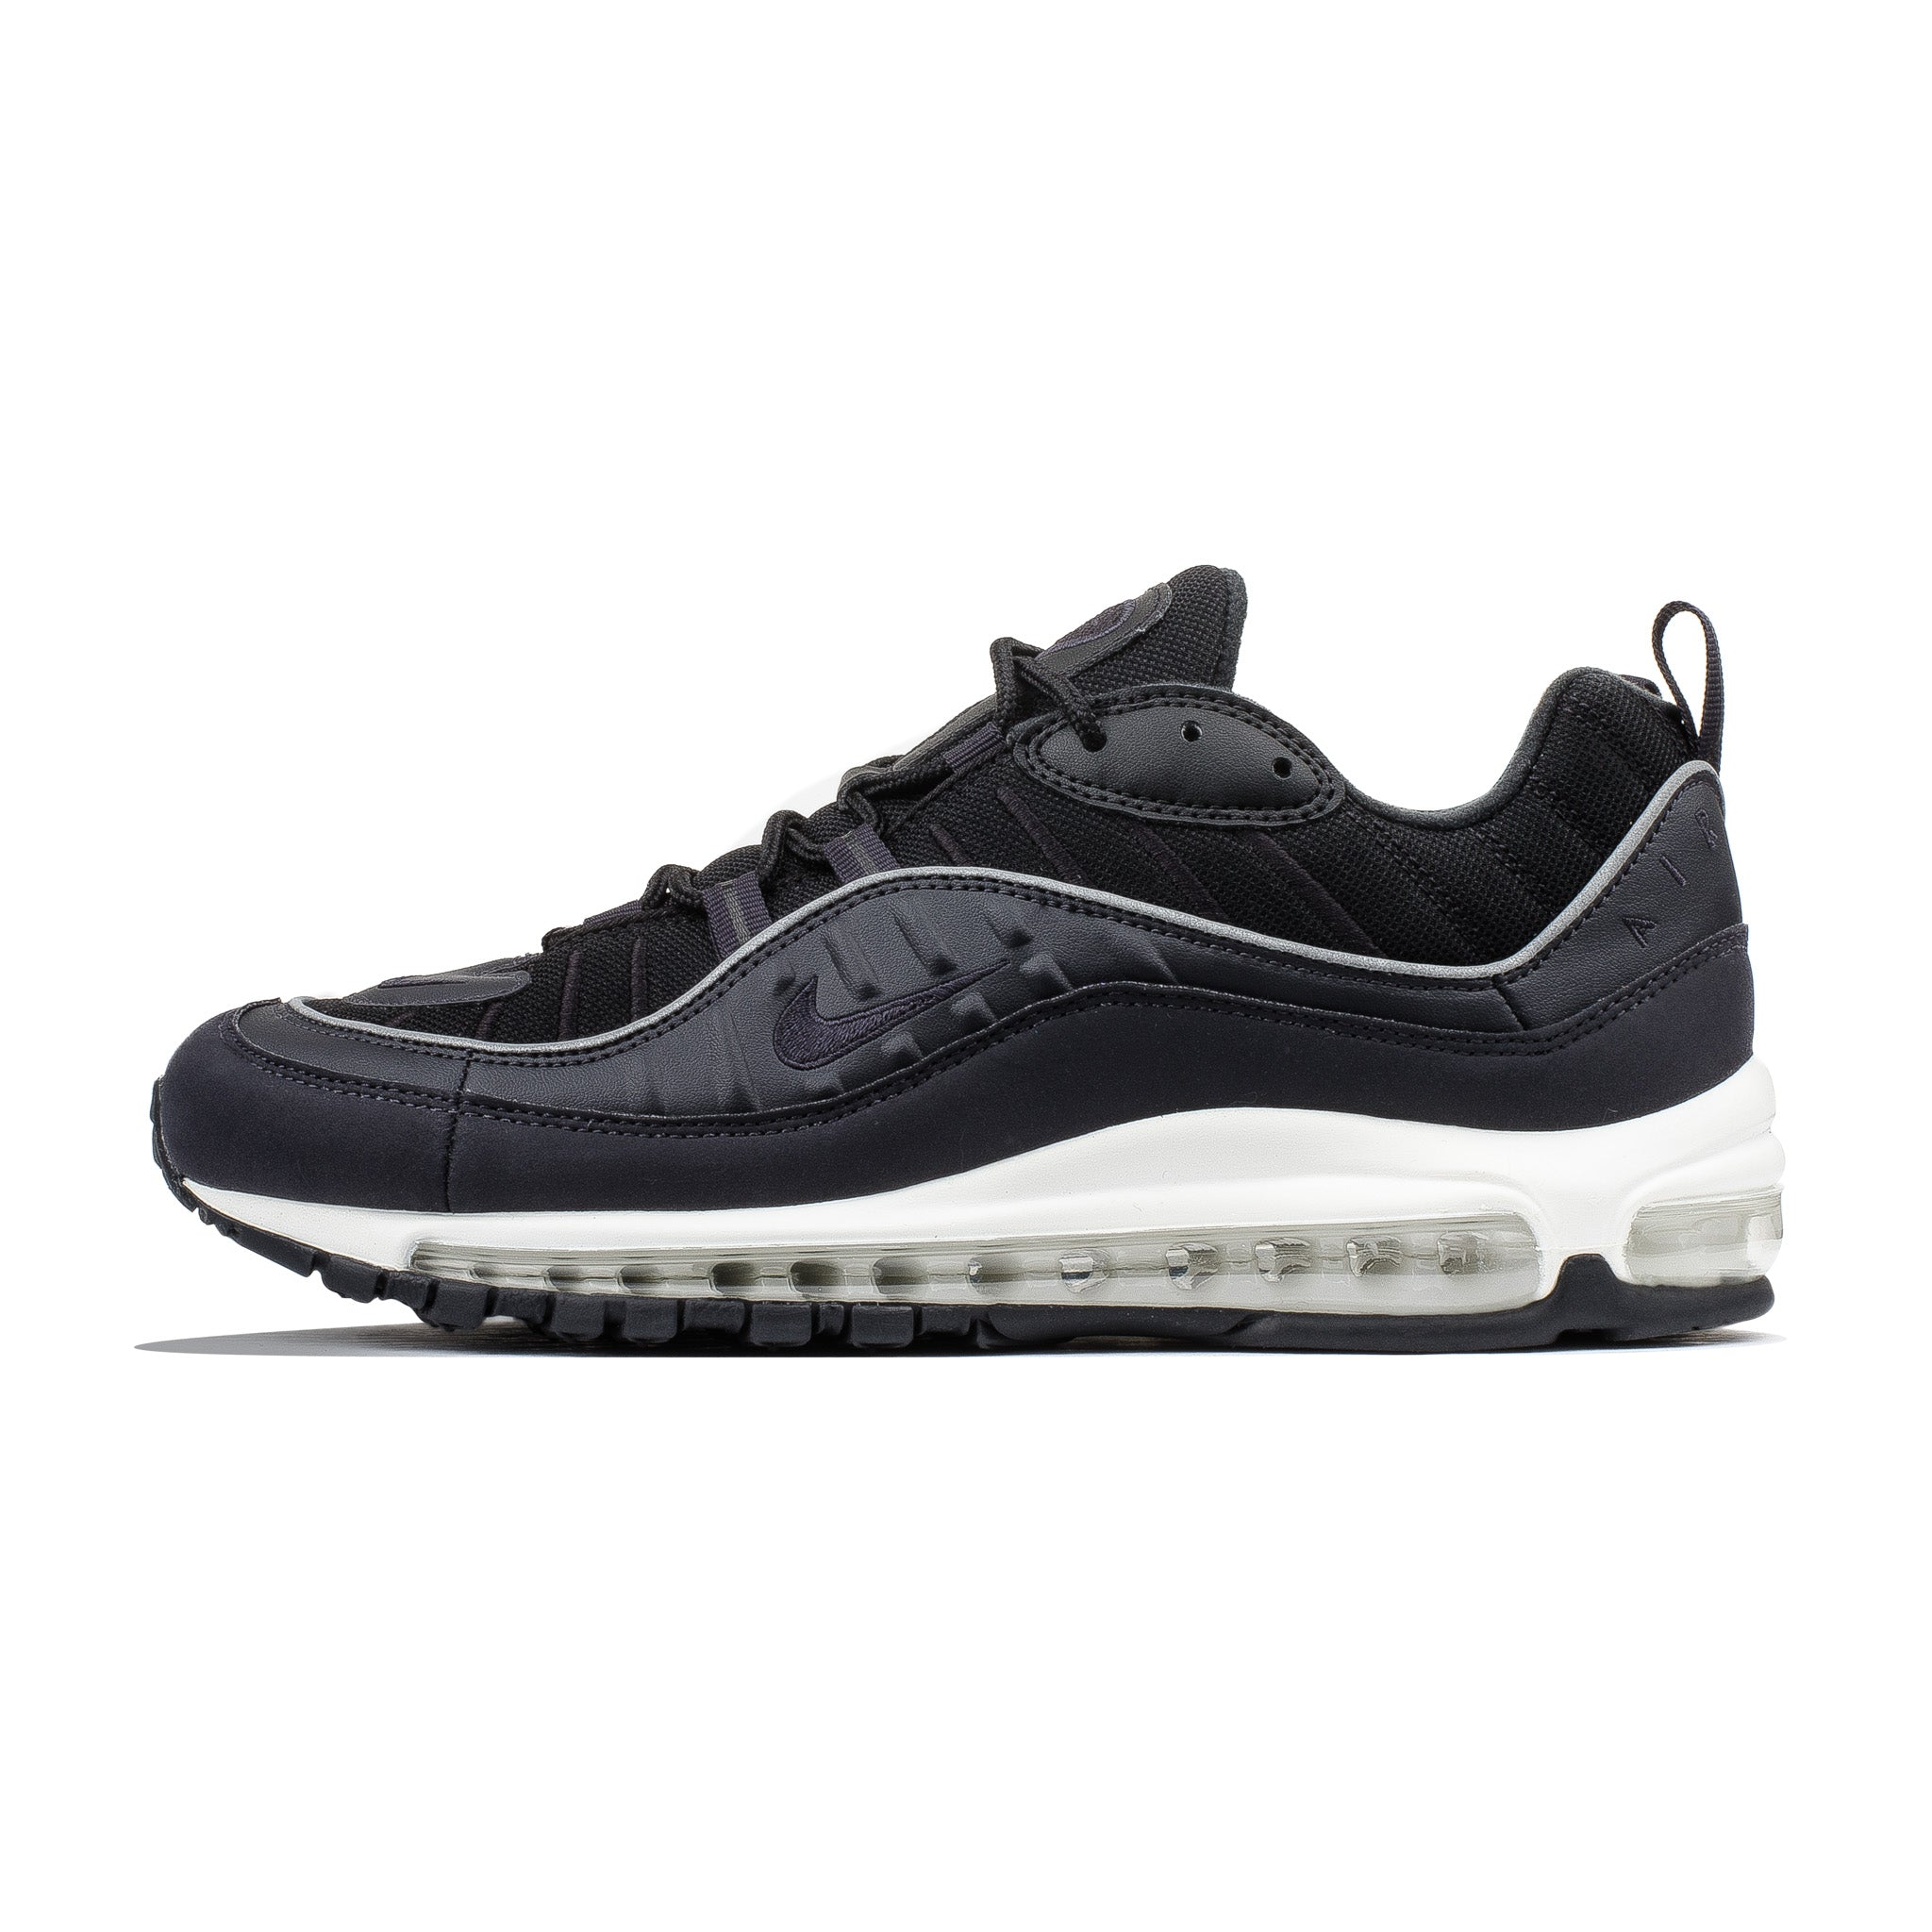 Air Max 98 640744-009 Oil Grey